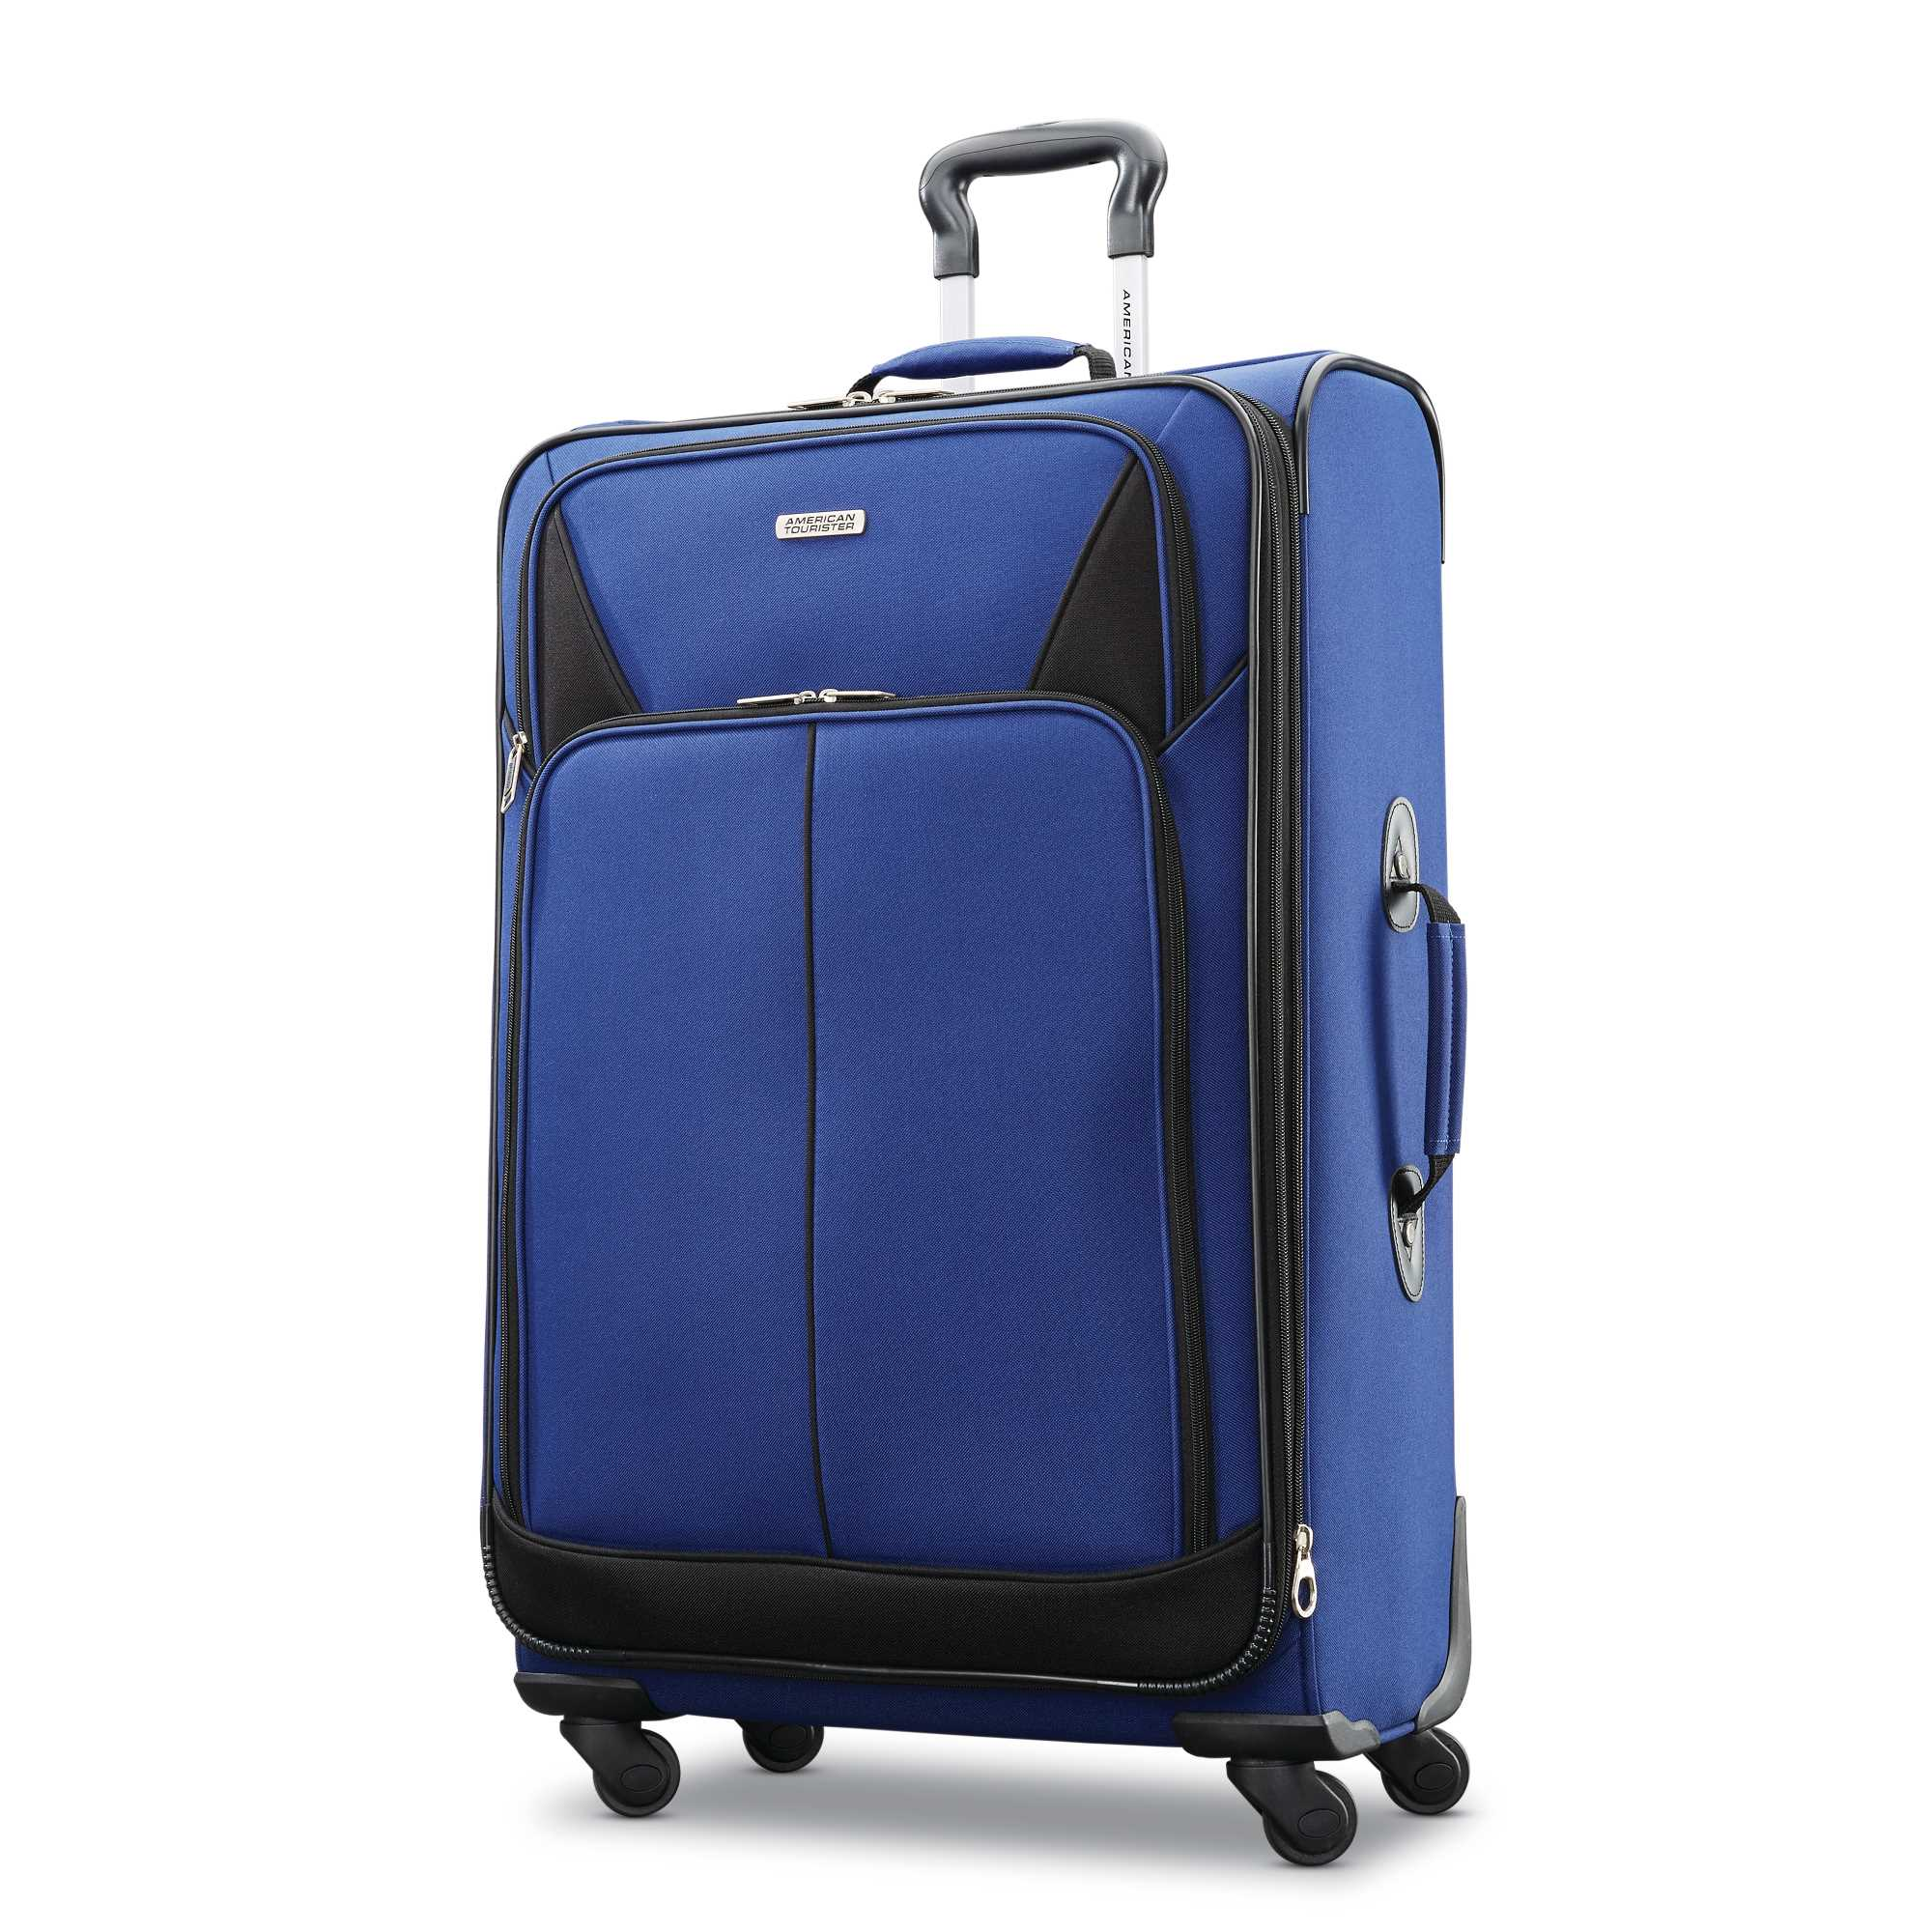 a54c61783 American Tourister - American Tourister 4 Piece Softside Luggage Set -  Walmart.com